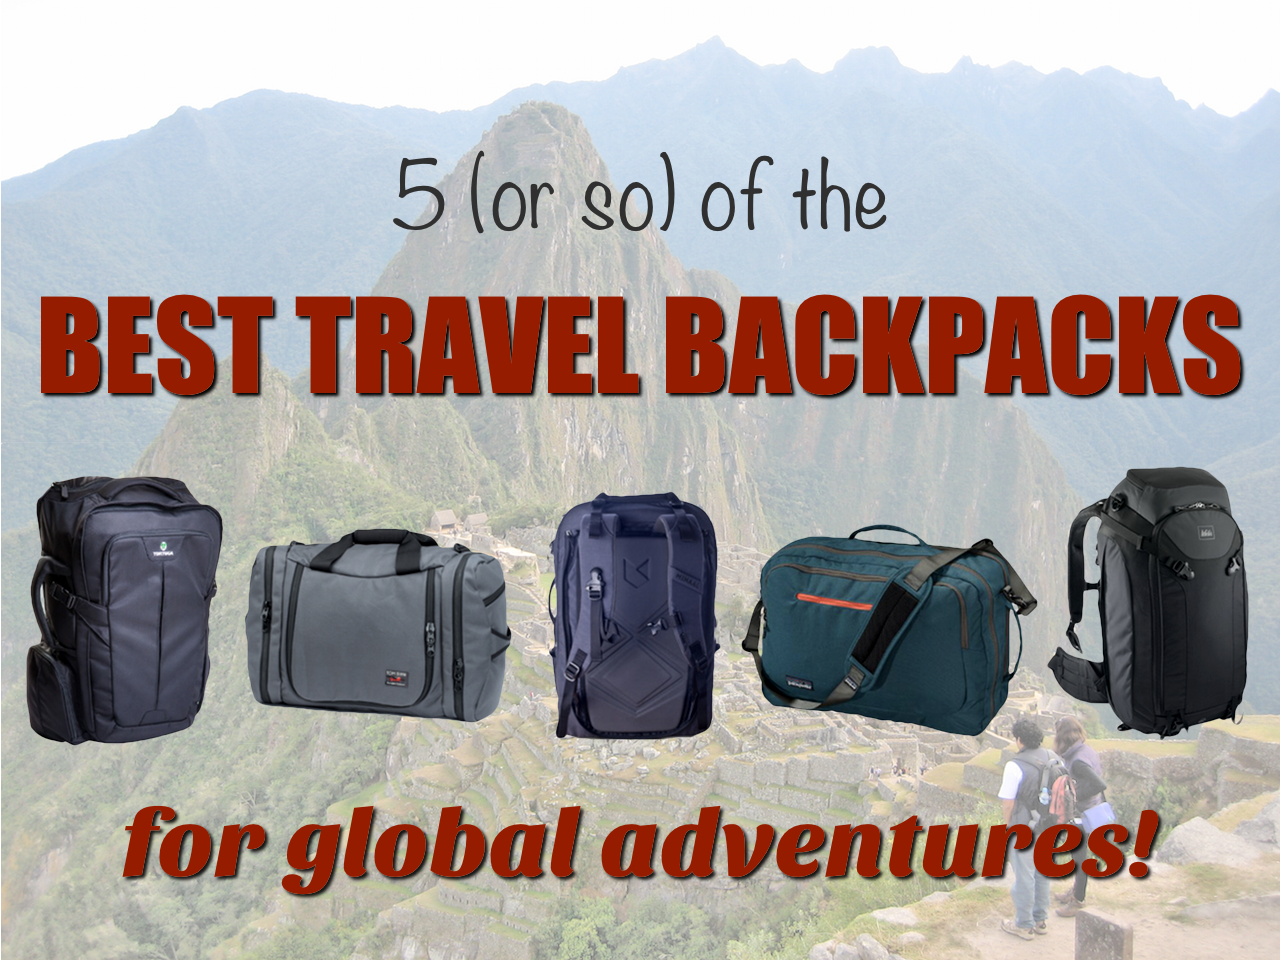 5 of the best travel backpacks for global adventures – Snarky Nomad 7702b581a8d31